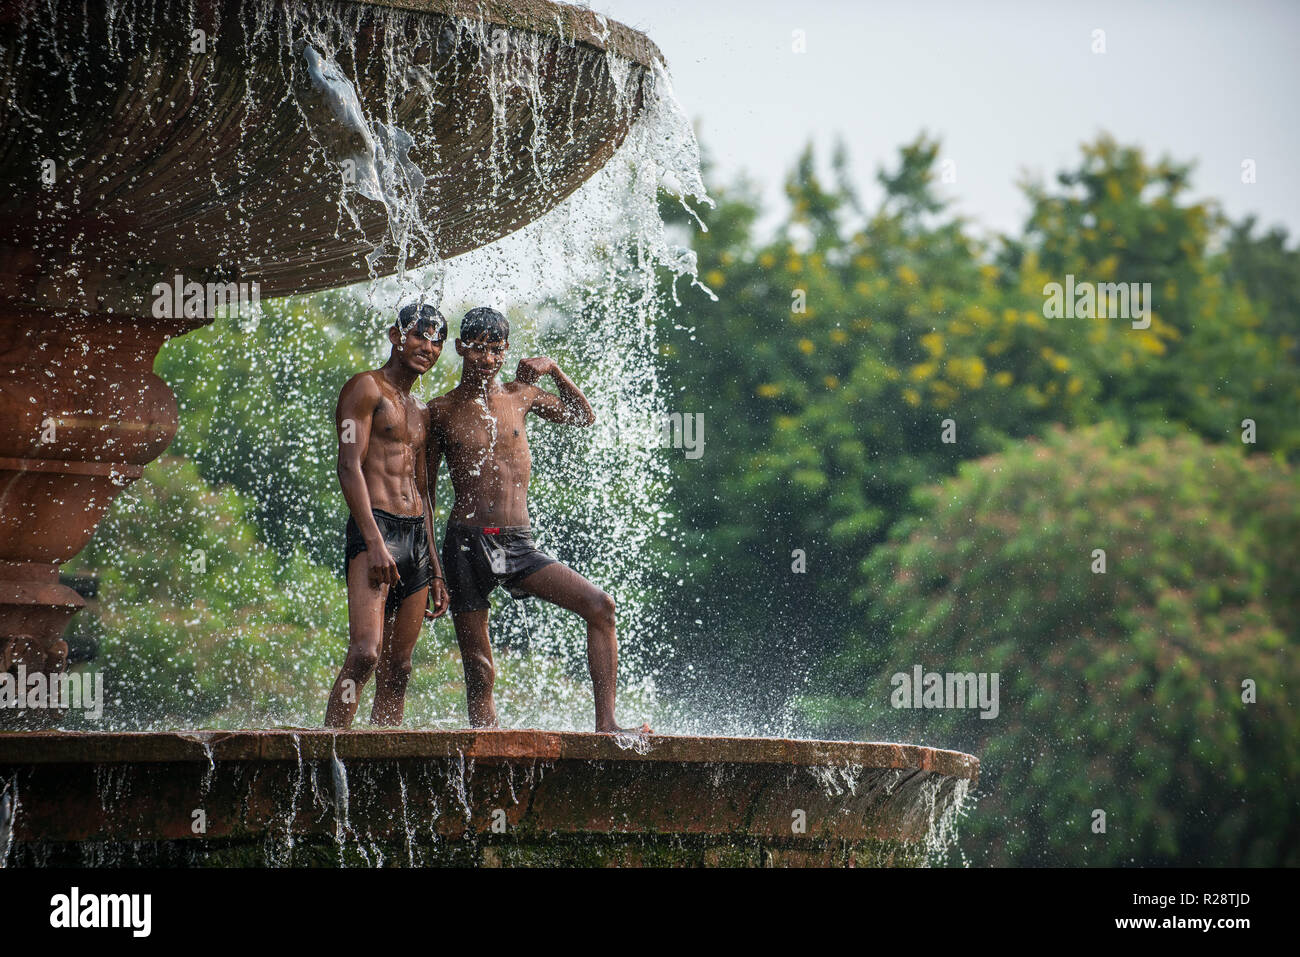 A group of boys and young men cool off in the fountain near the India Gate, a war memorial in New Delhi, India. Stock Photo